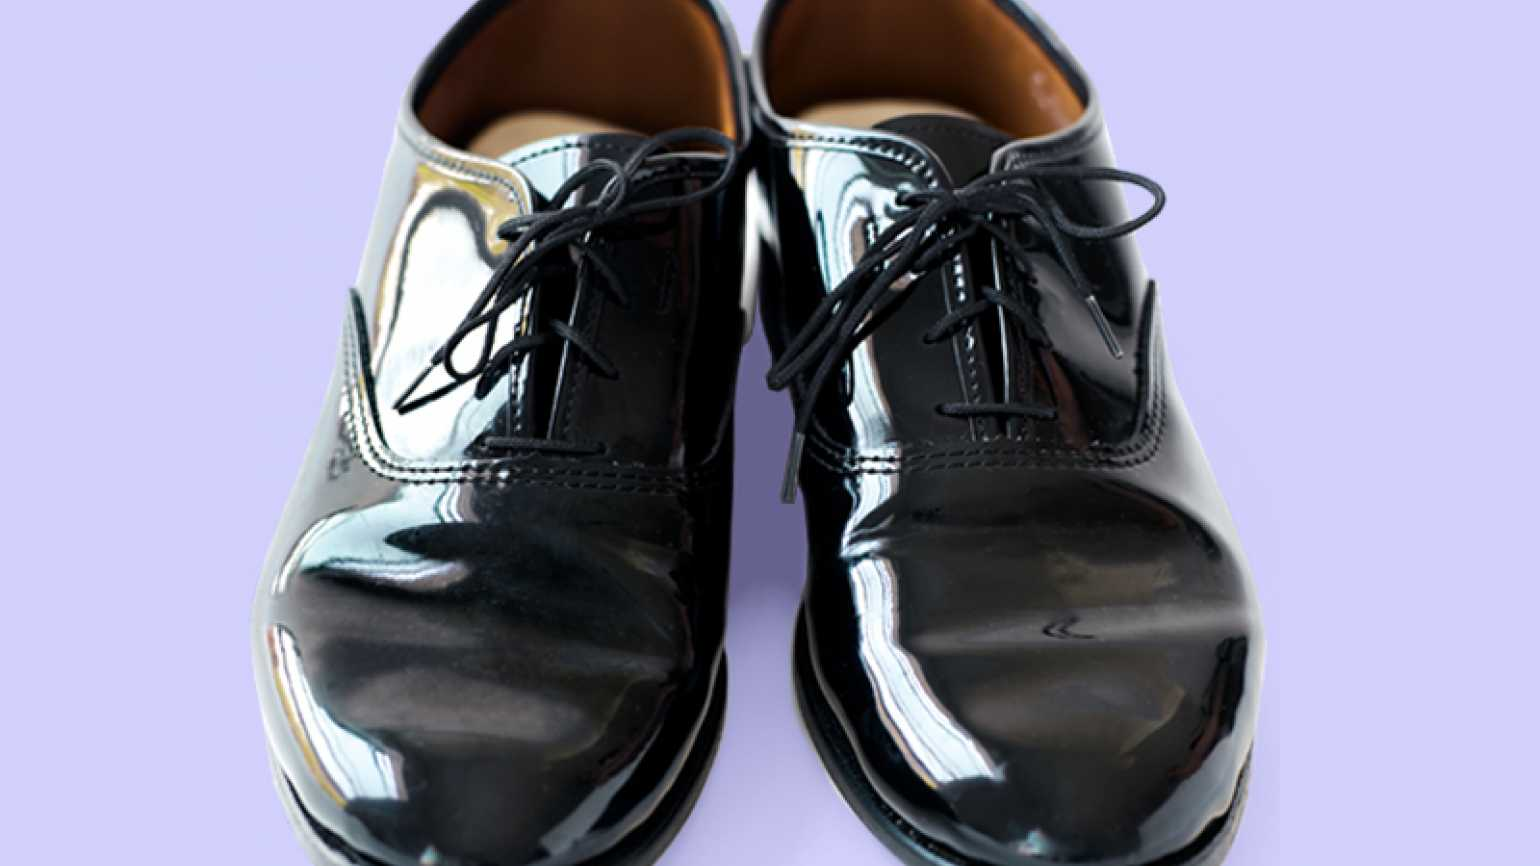 A pair of men's black dress shoes